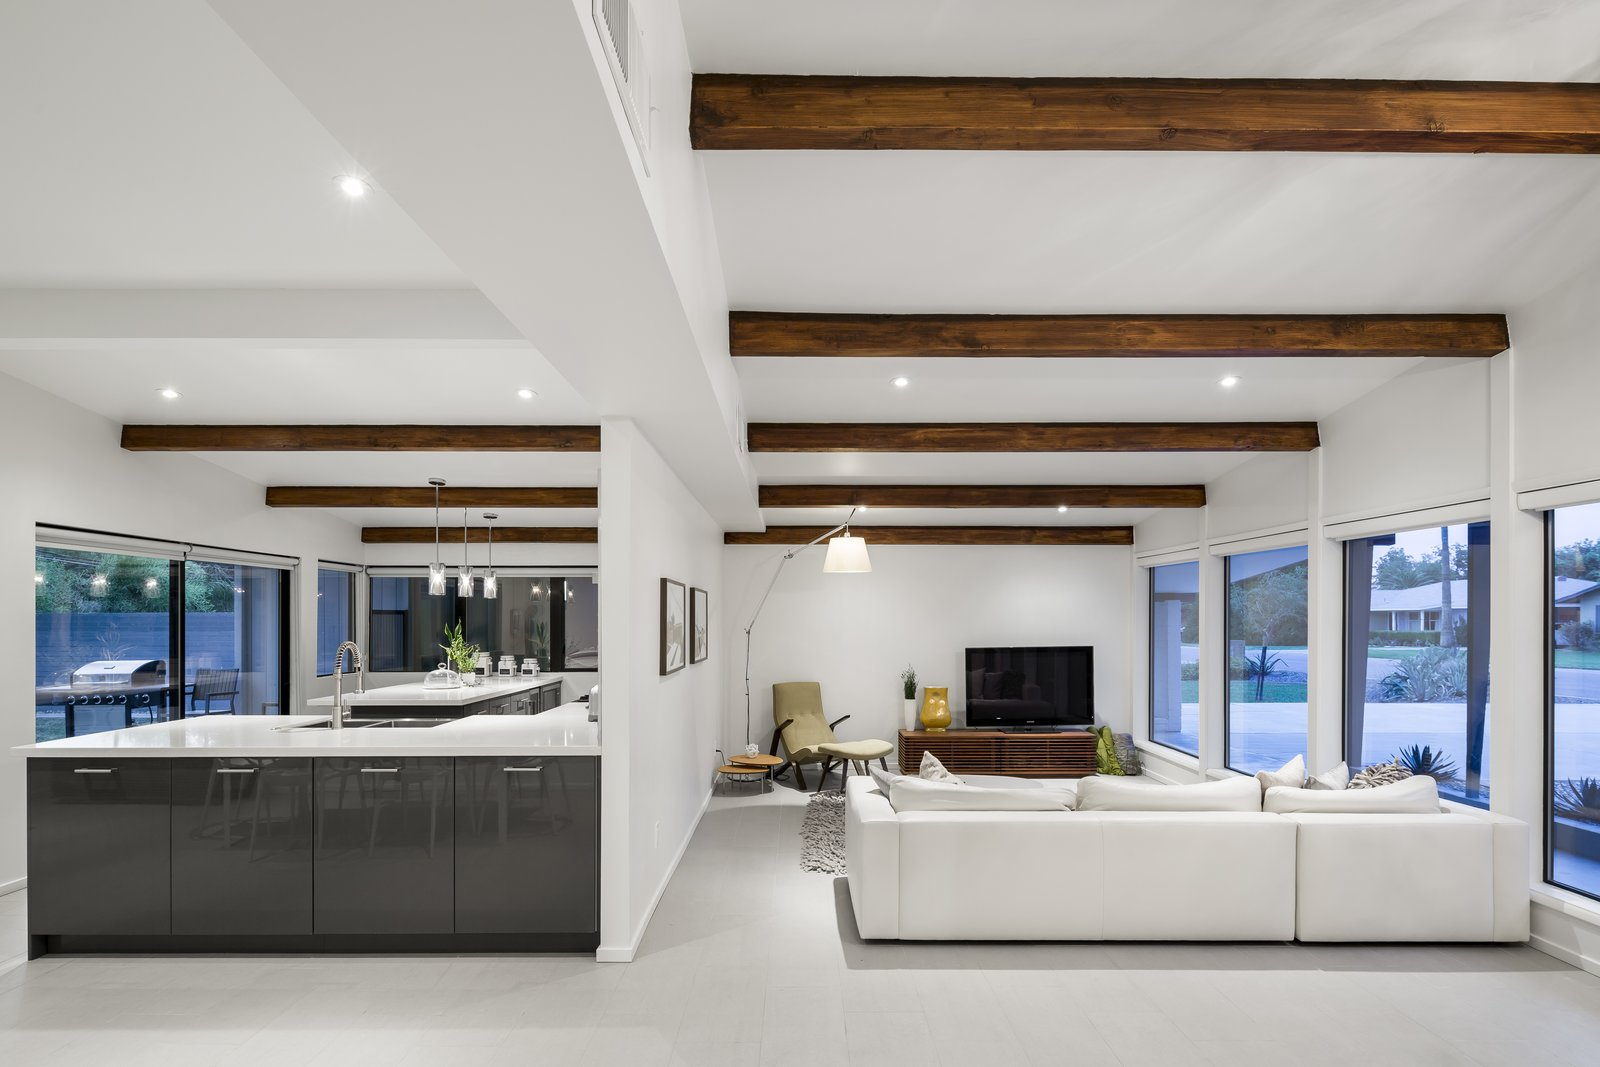 A focus of the renovation was to accentuate the original beams of the mid-century home